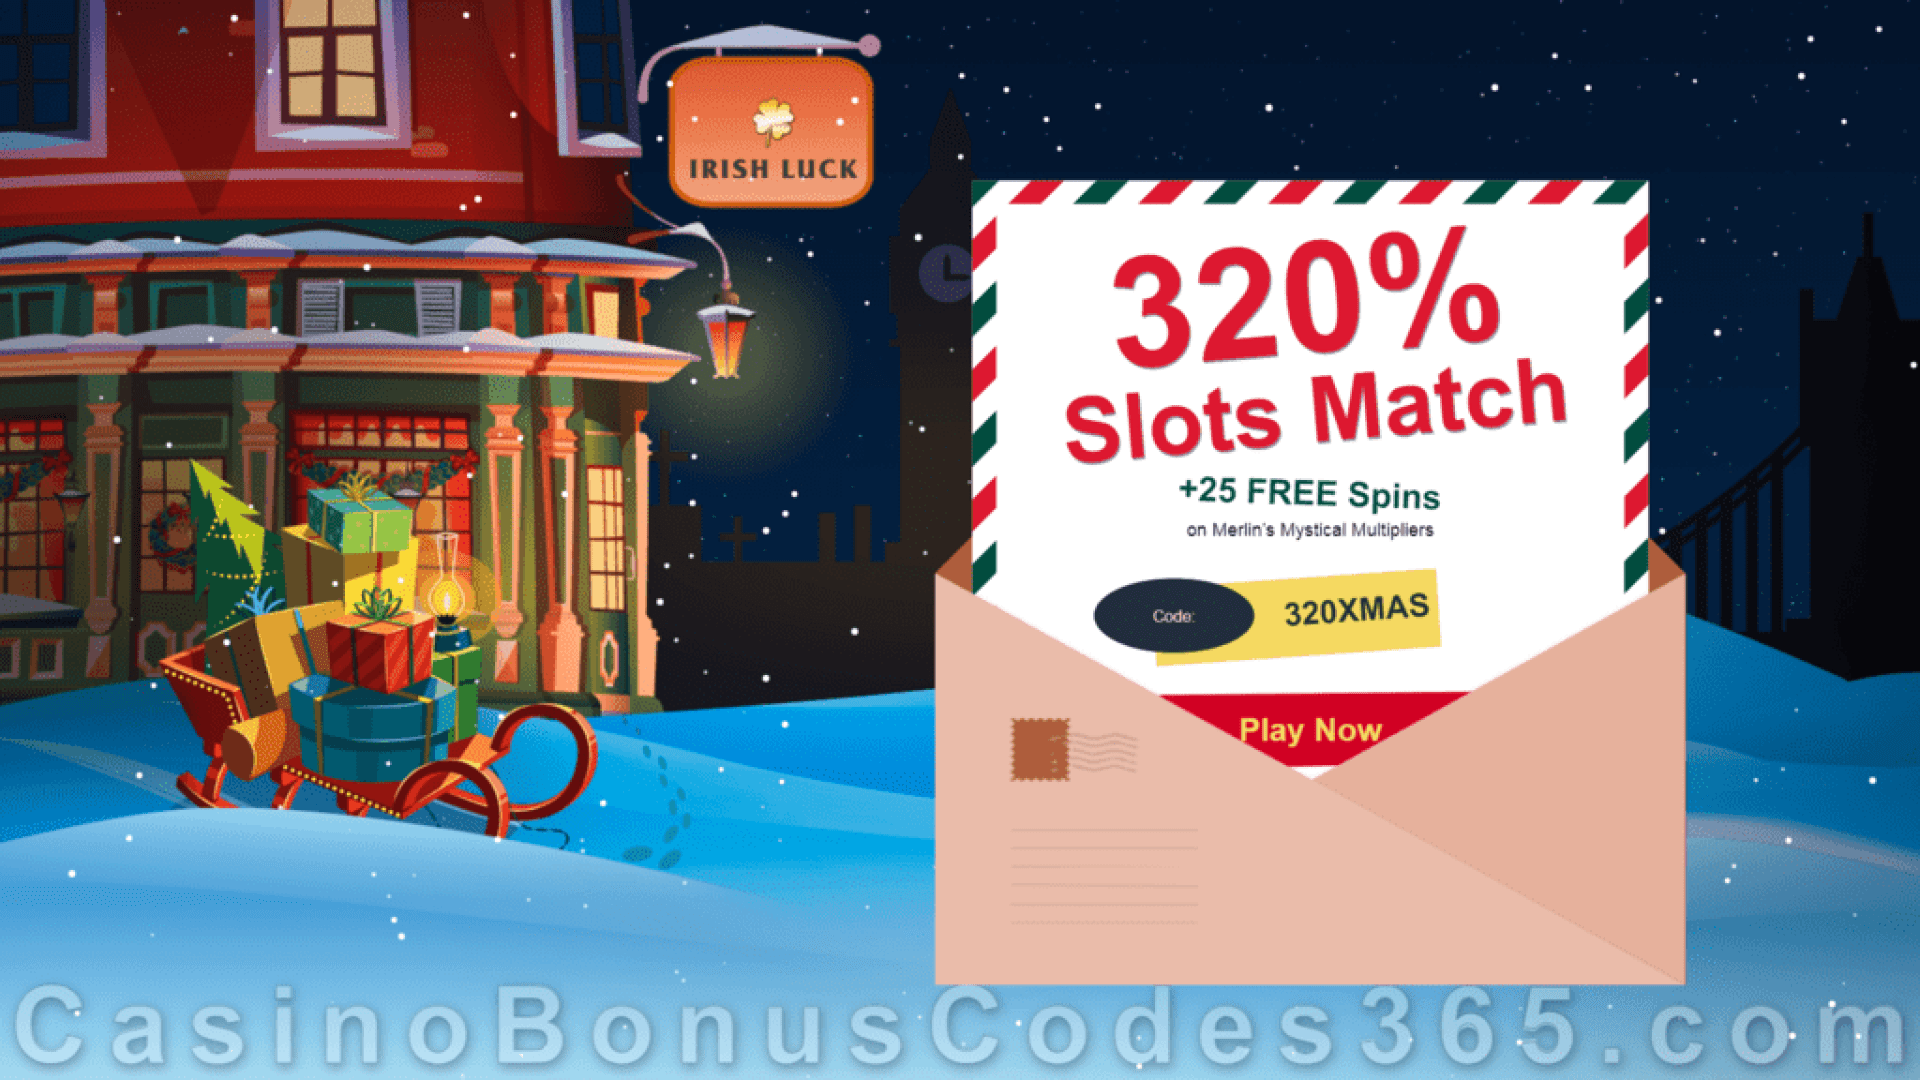 IrishLuck Casino 320% Slots Match Bonus plus 25 FREE Rival Gaming Merlin's Mystical Multipliers Spins Xmas 2020 Special Welcome Deal